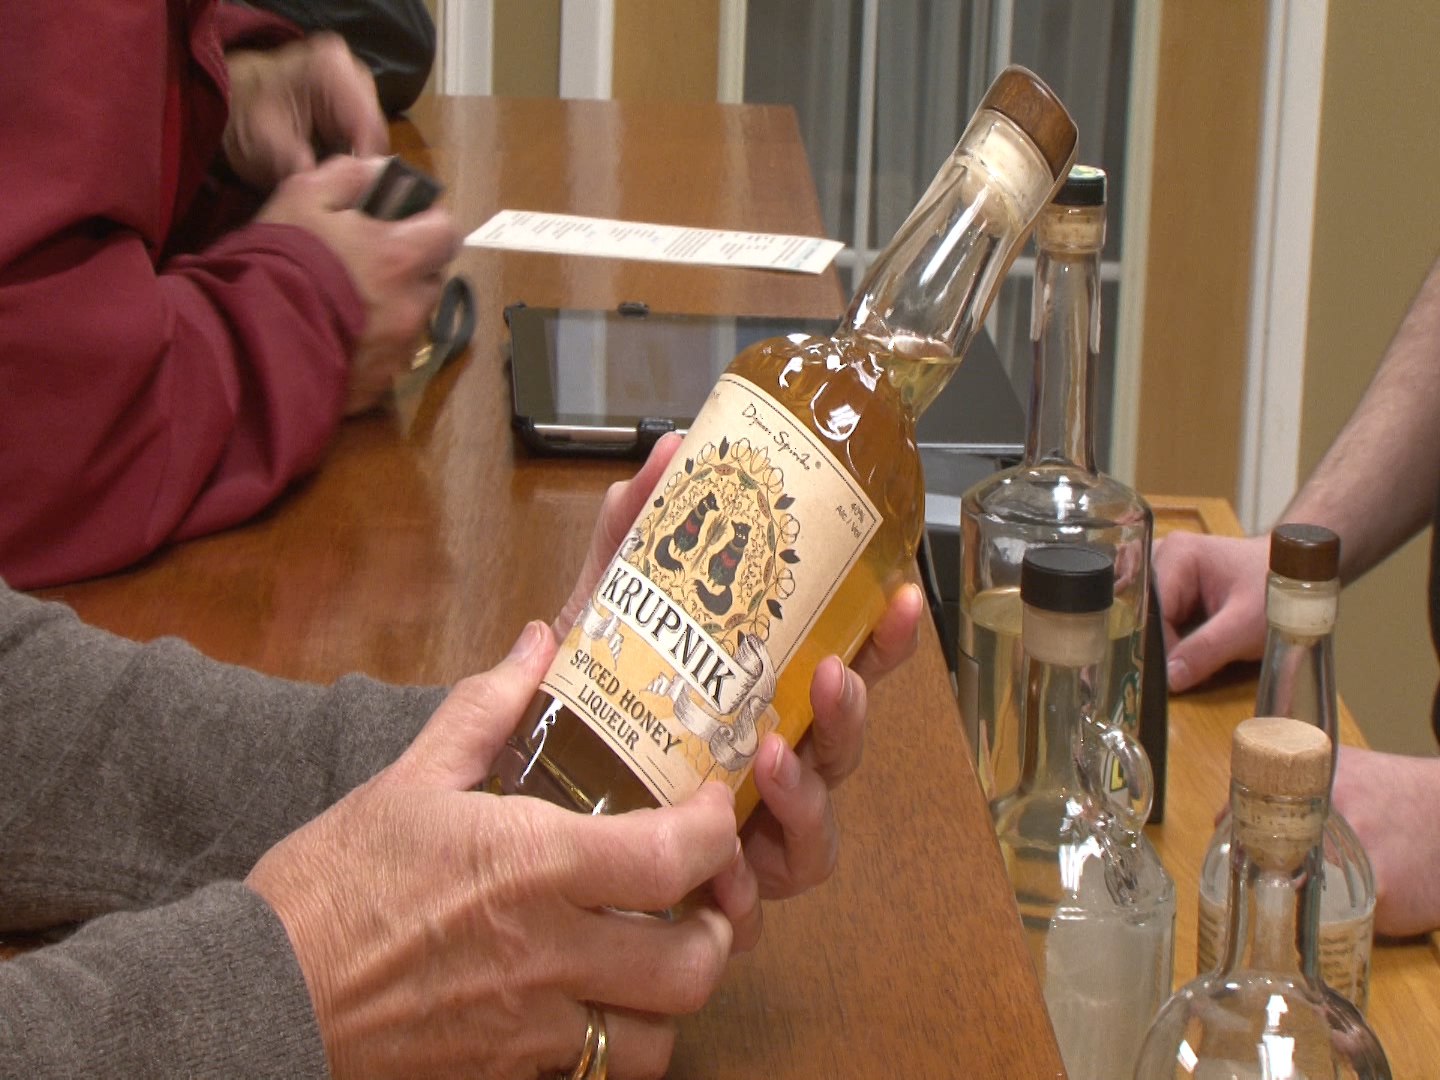 Bottle of Krupnik, a new local spirit that goes down smooth as honey.